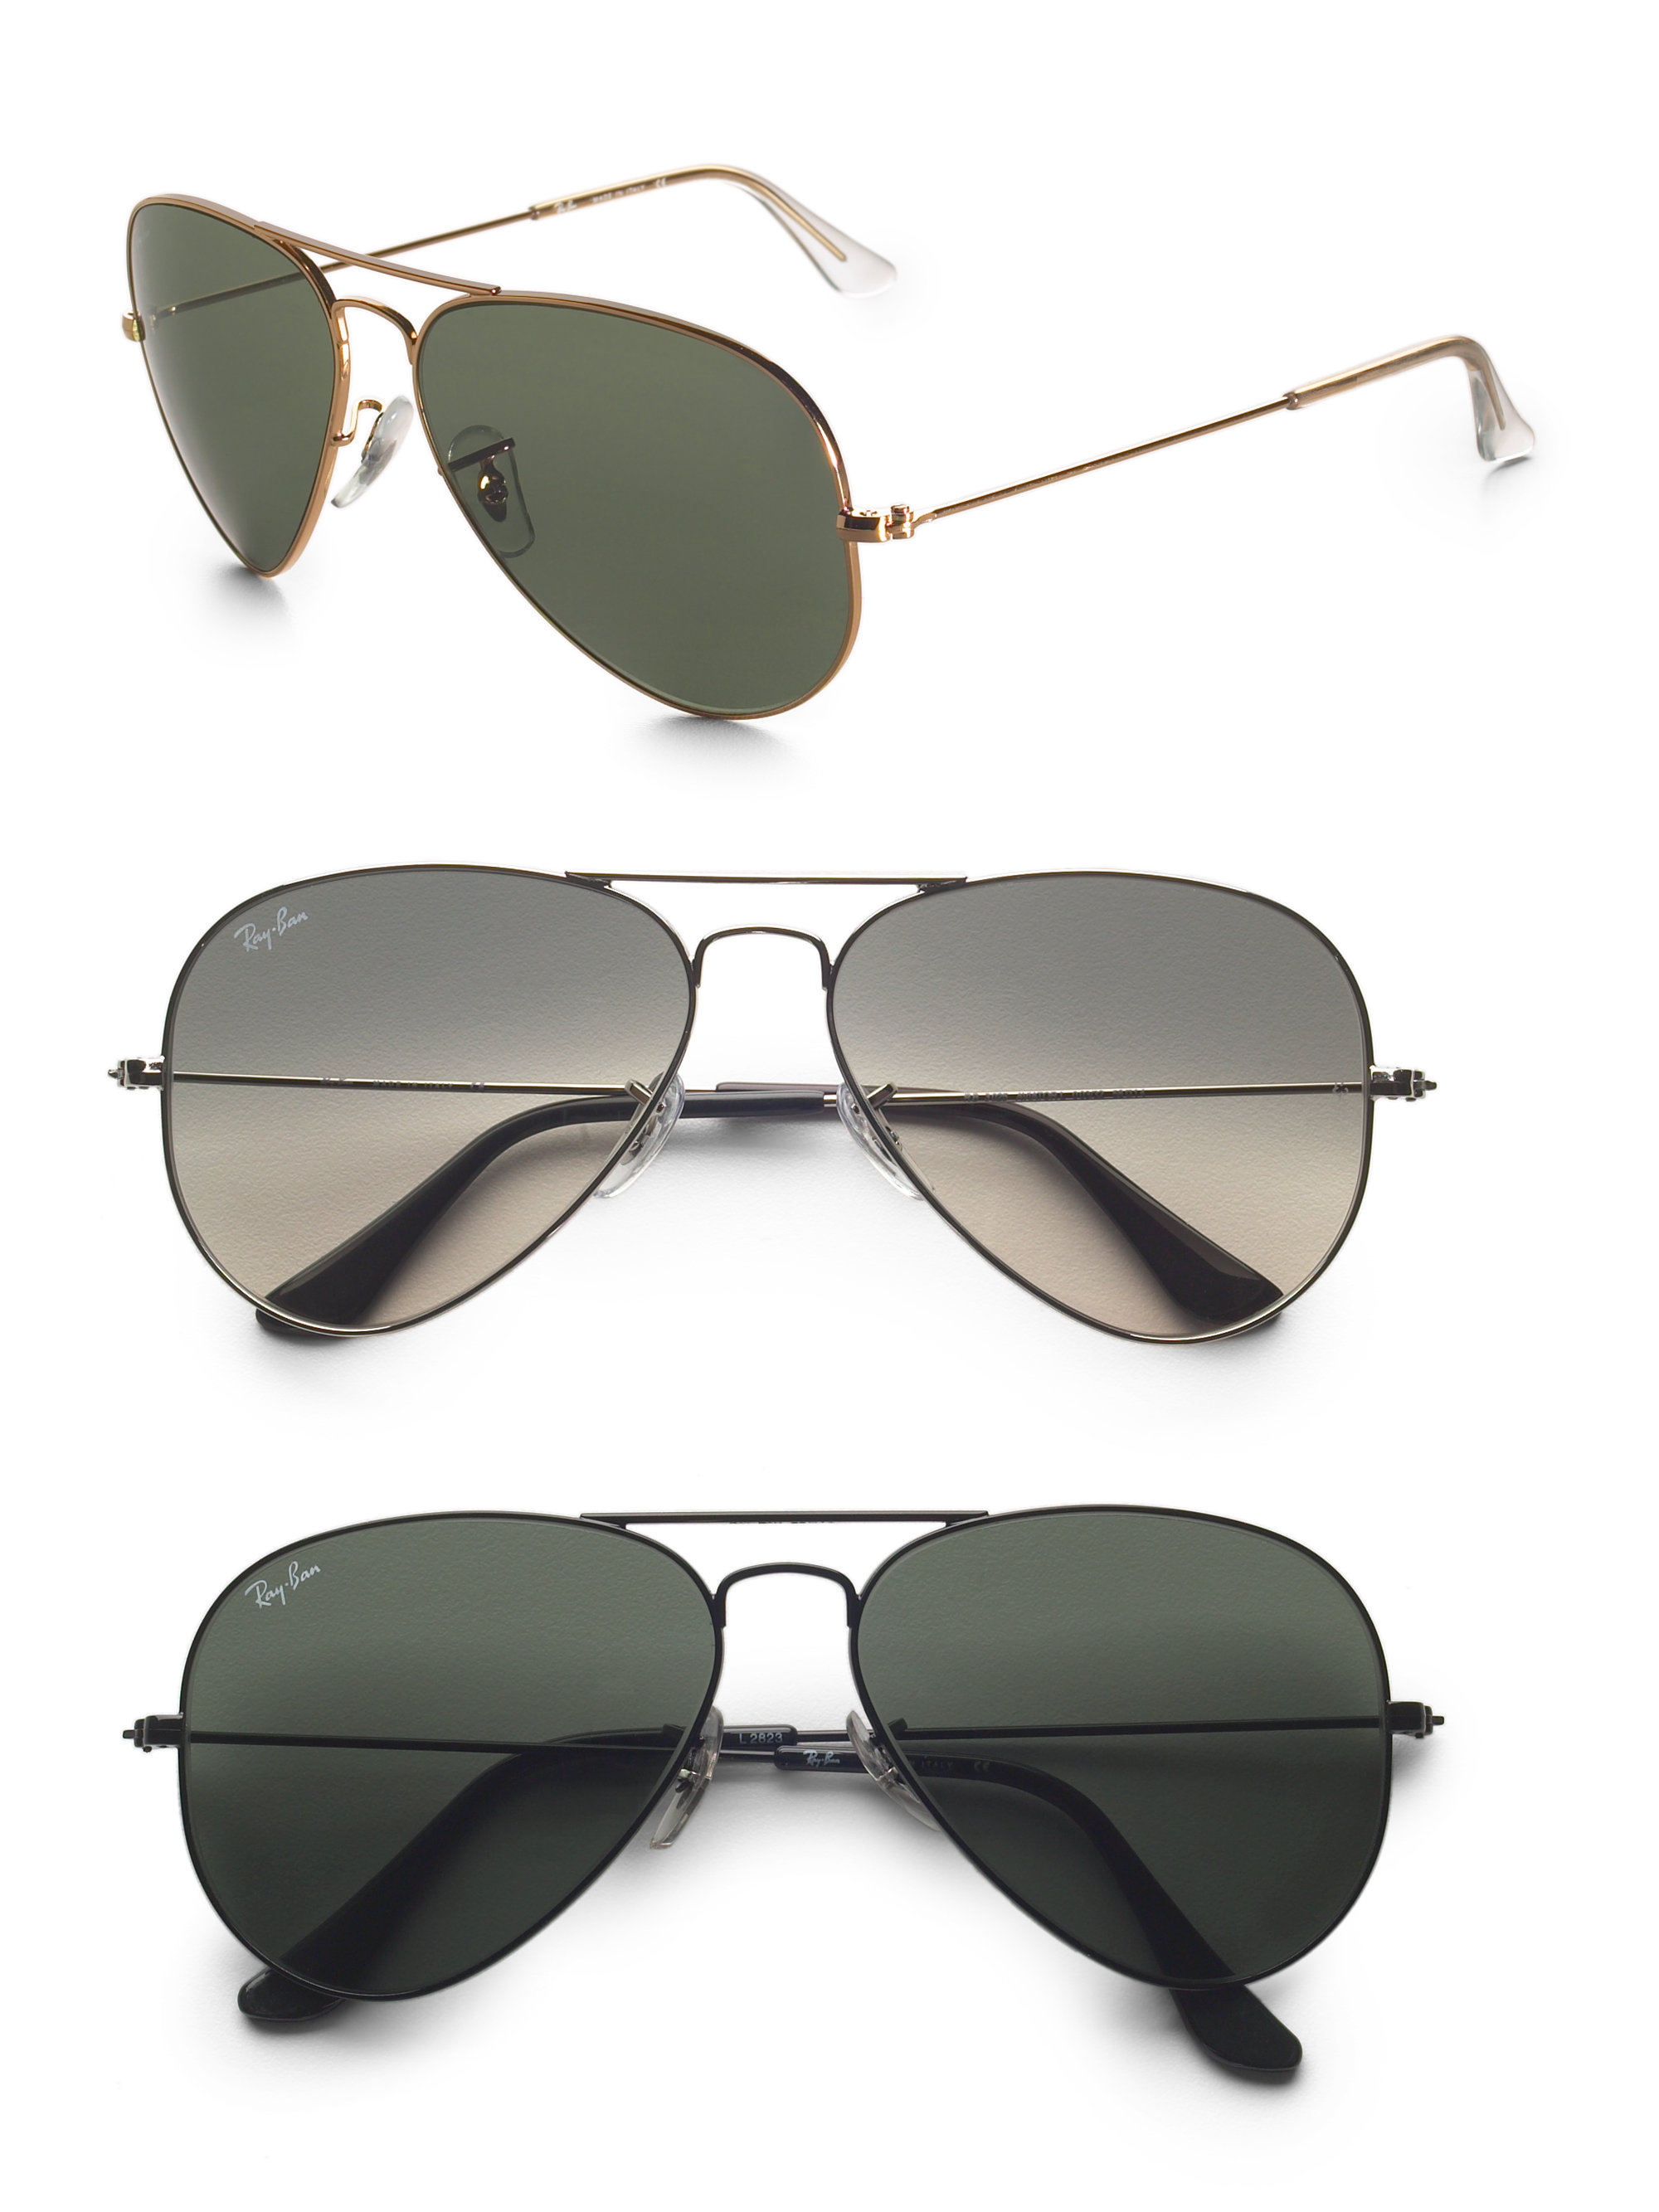 original aviator glasses  original ray ban sunglasses images